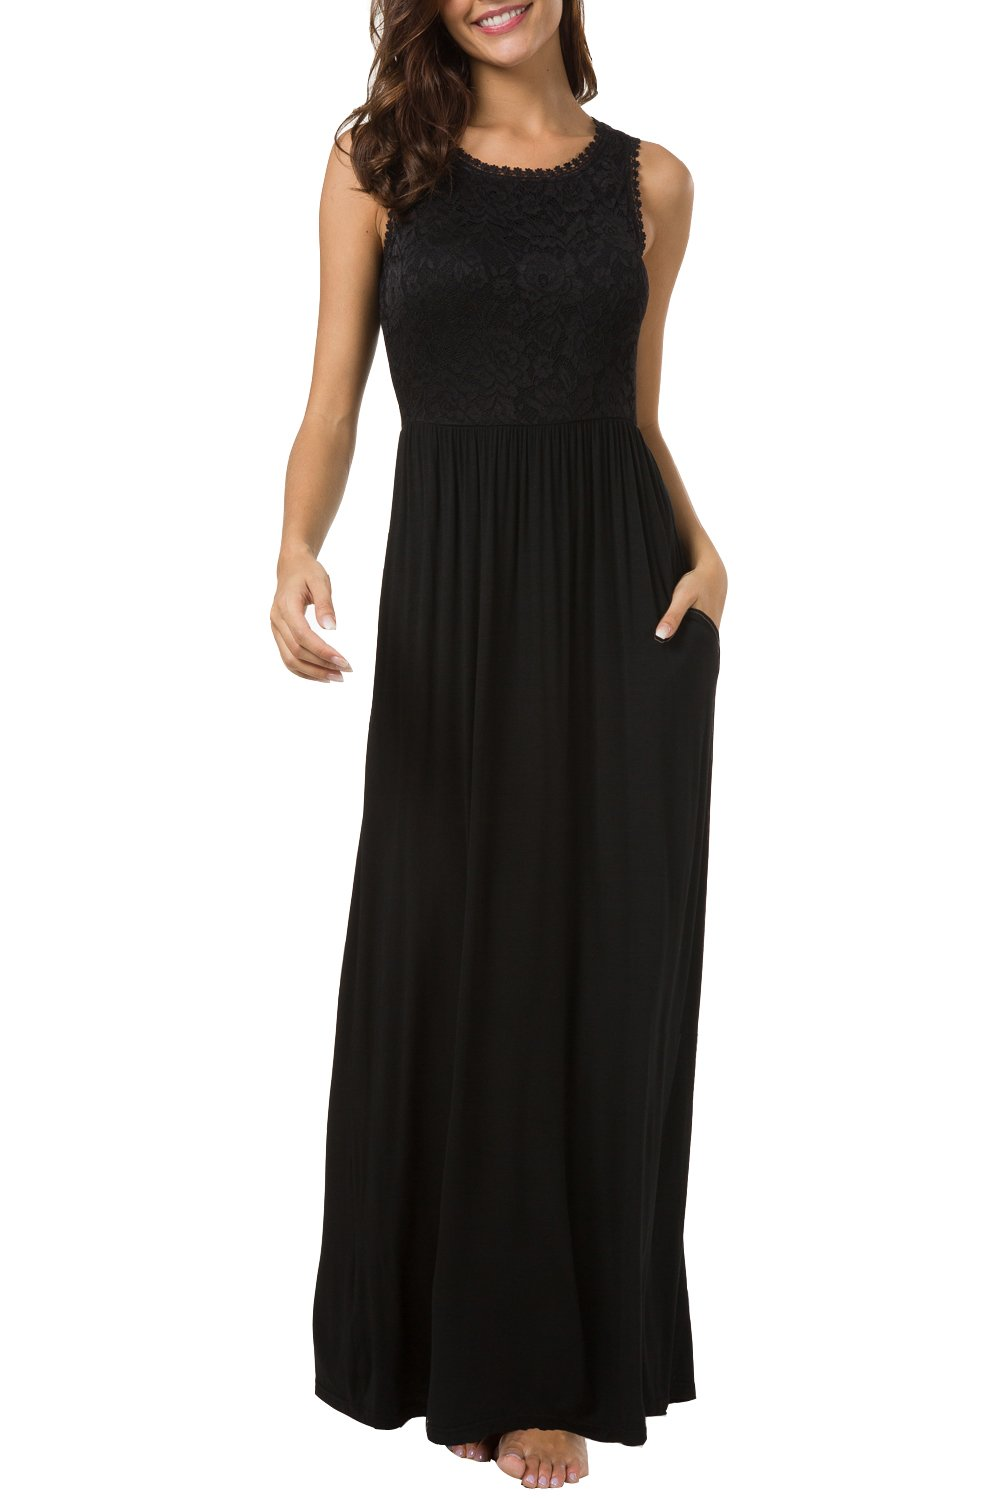 Zattcas Womens Casual Sleeveless Vintage Floral Lace Party Bridesmaid Wedding Maxi Dress … (X-Large, Style 2 - Black with Pockets)